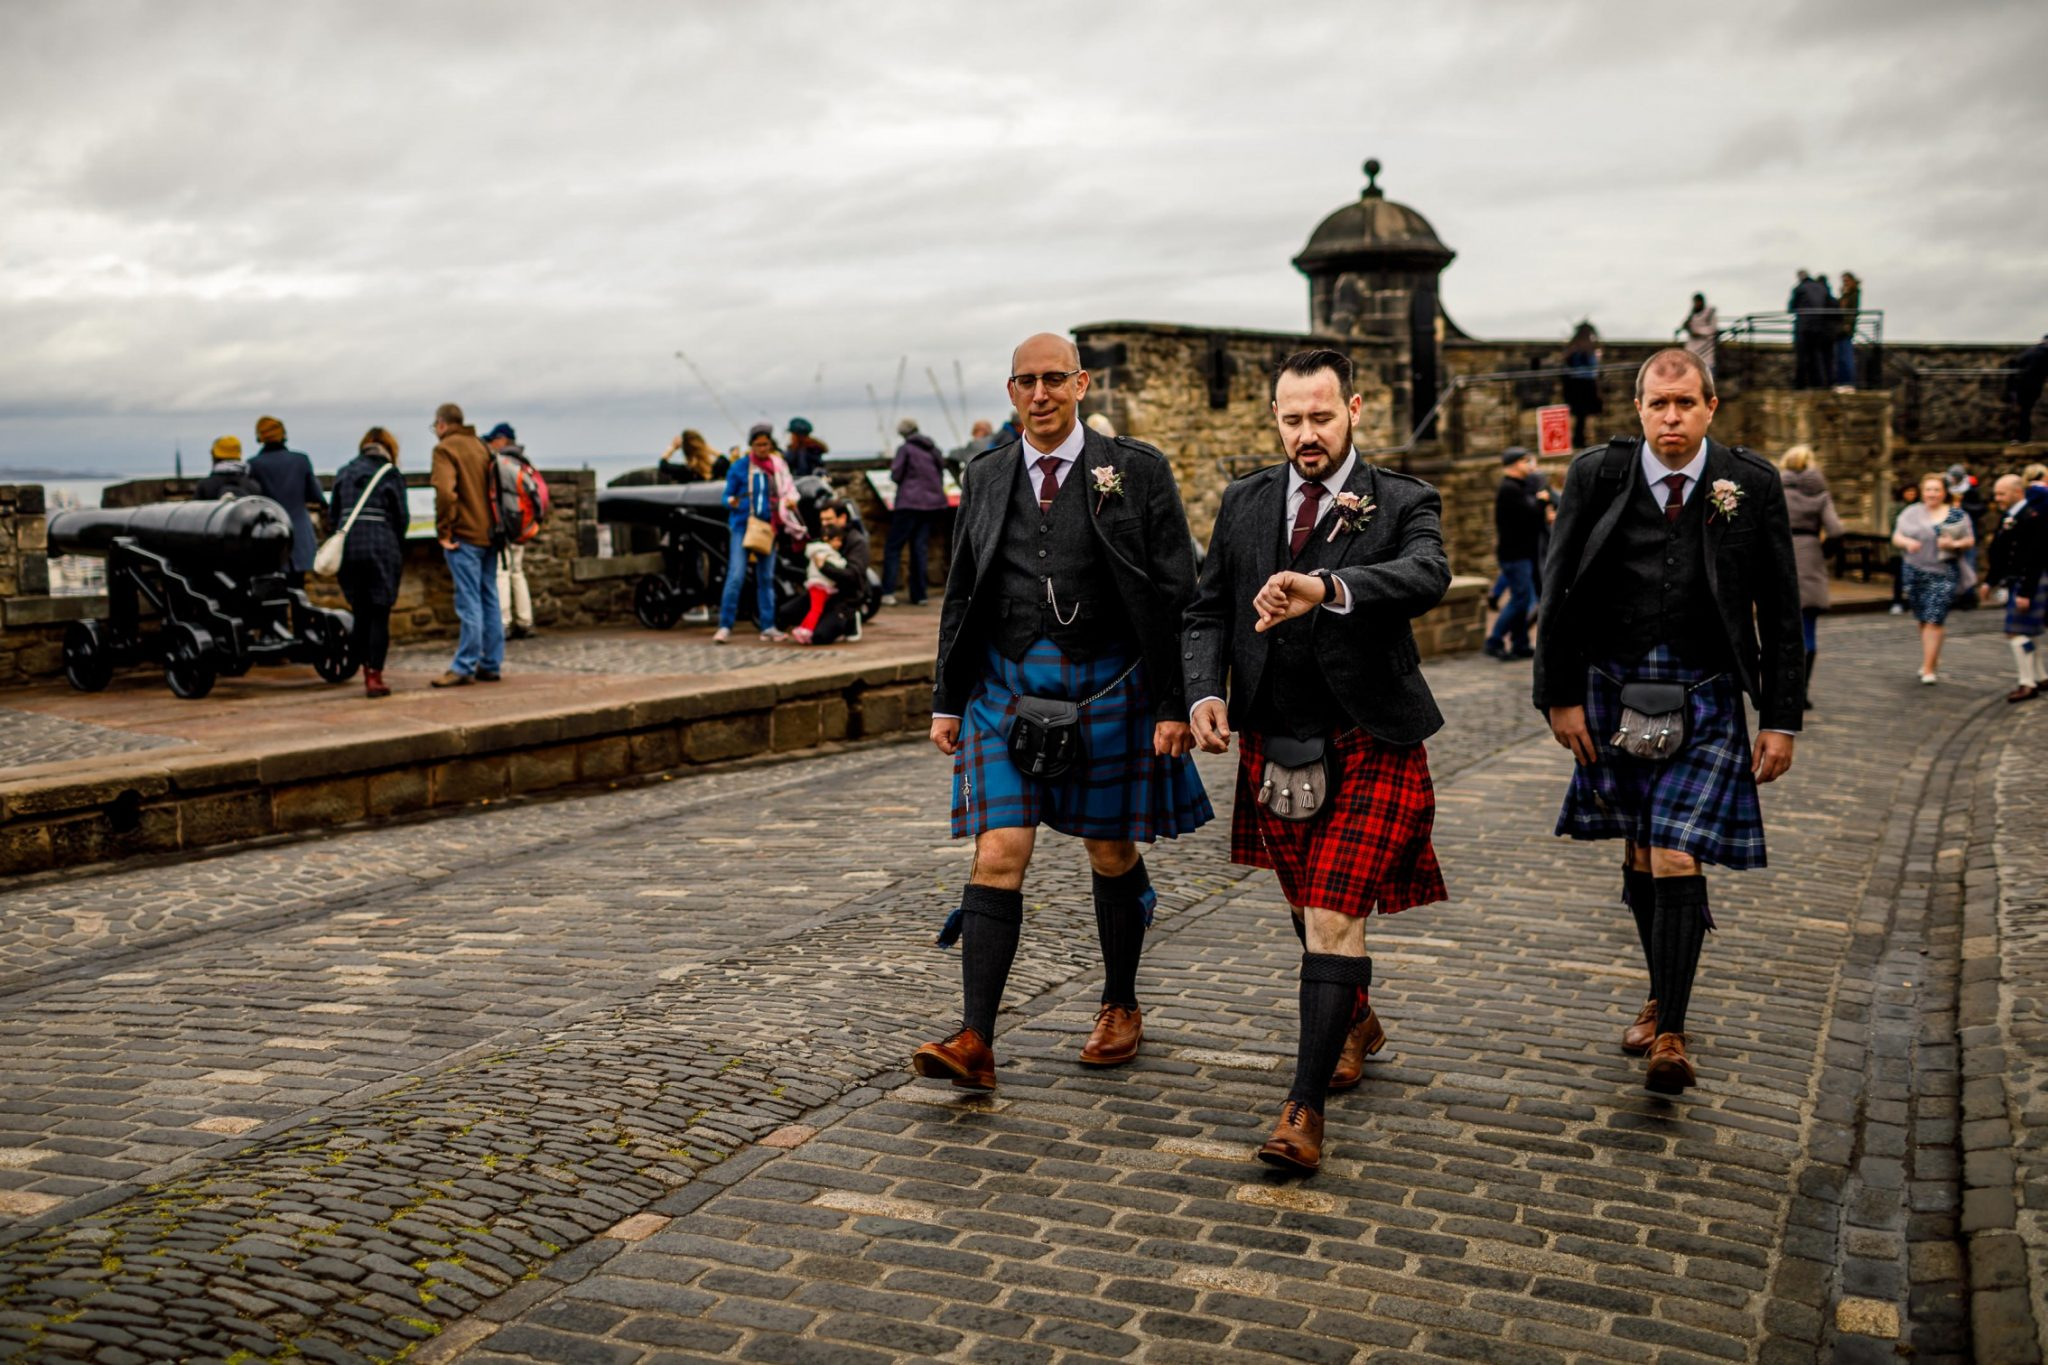 Unique Wedding Venues- Unconventional Wedding- Lina & Tom Photography- groomsmen arriving at wedding